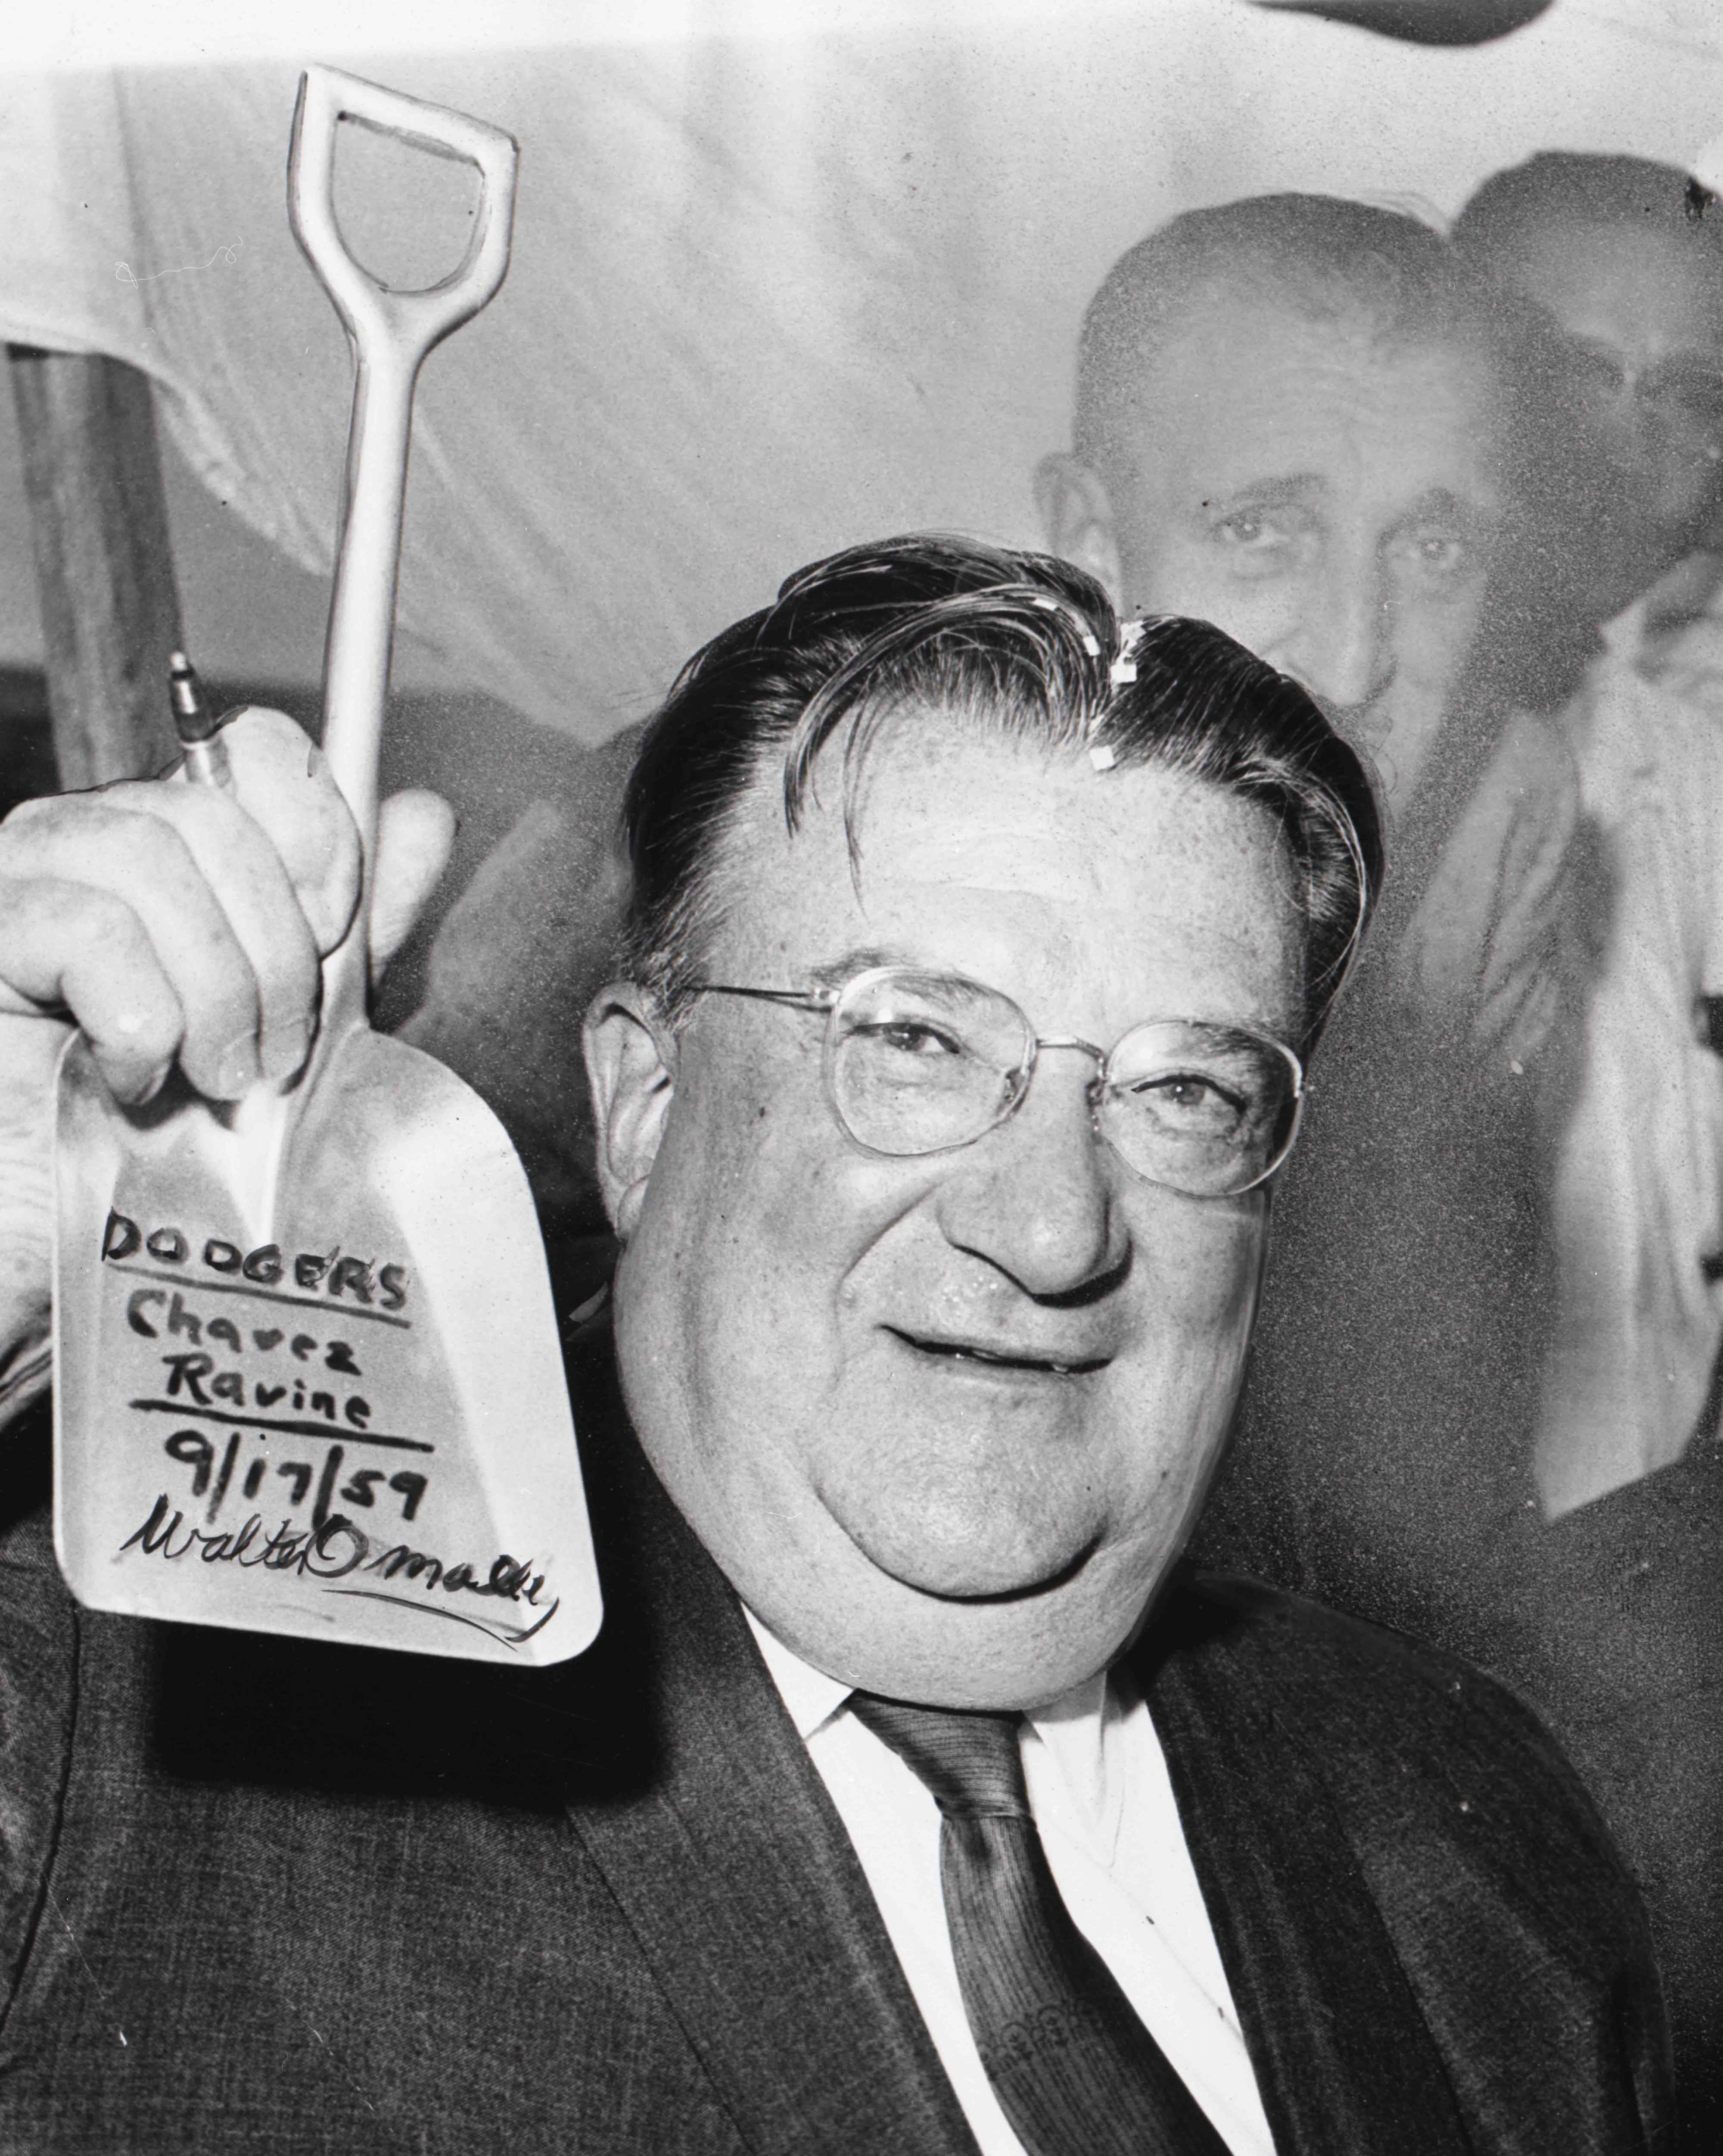 Former owner of the Dodgers Walter O'Malley with his shovel. LA Herald Examiner Photo Collection, Los Angeles Public Library